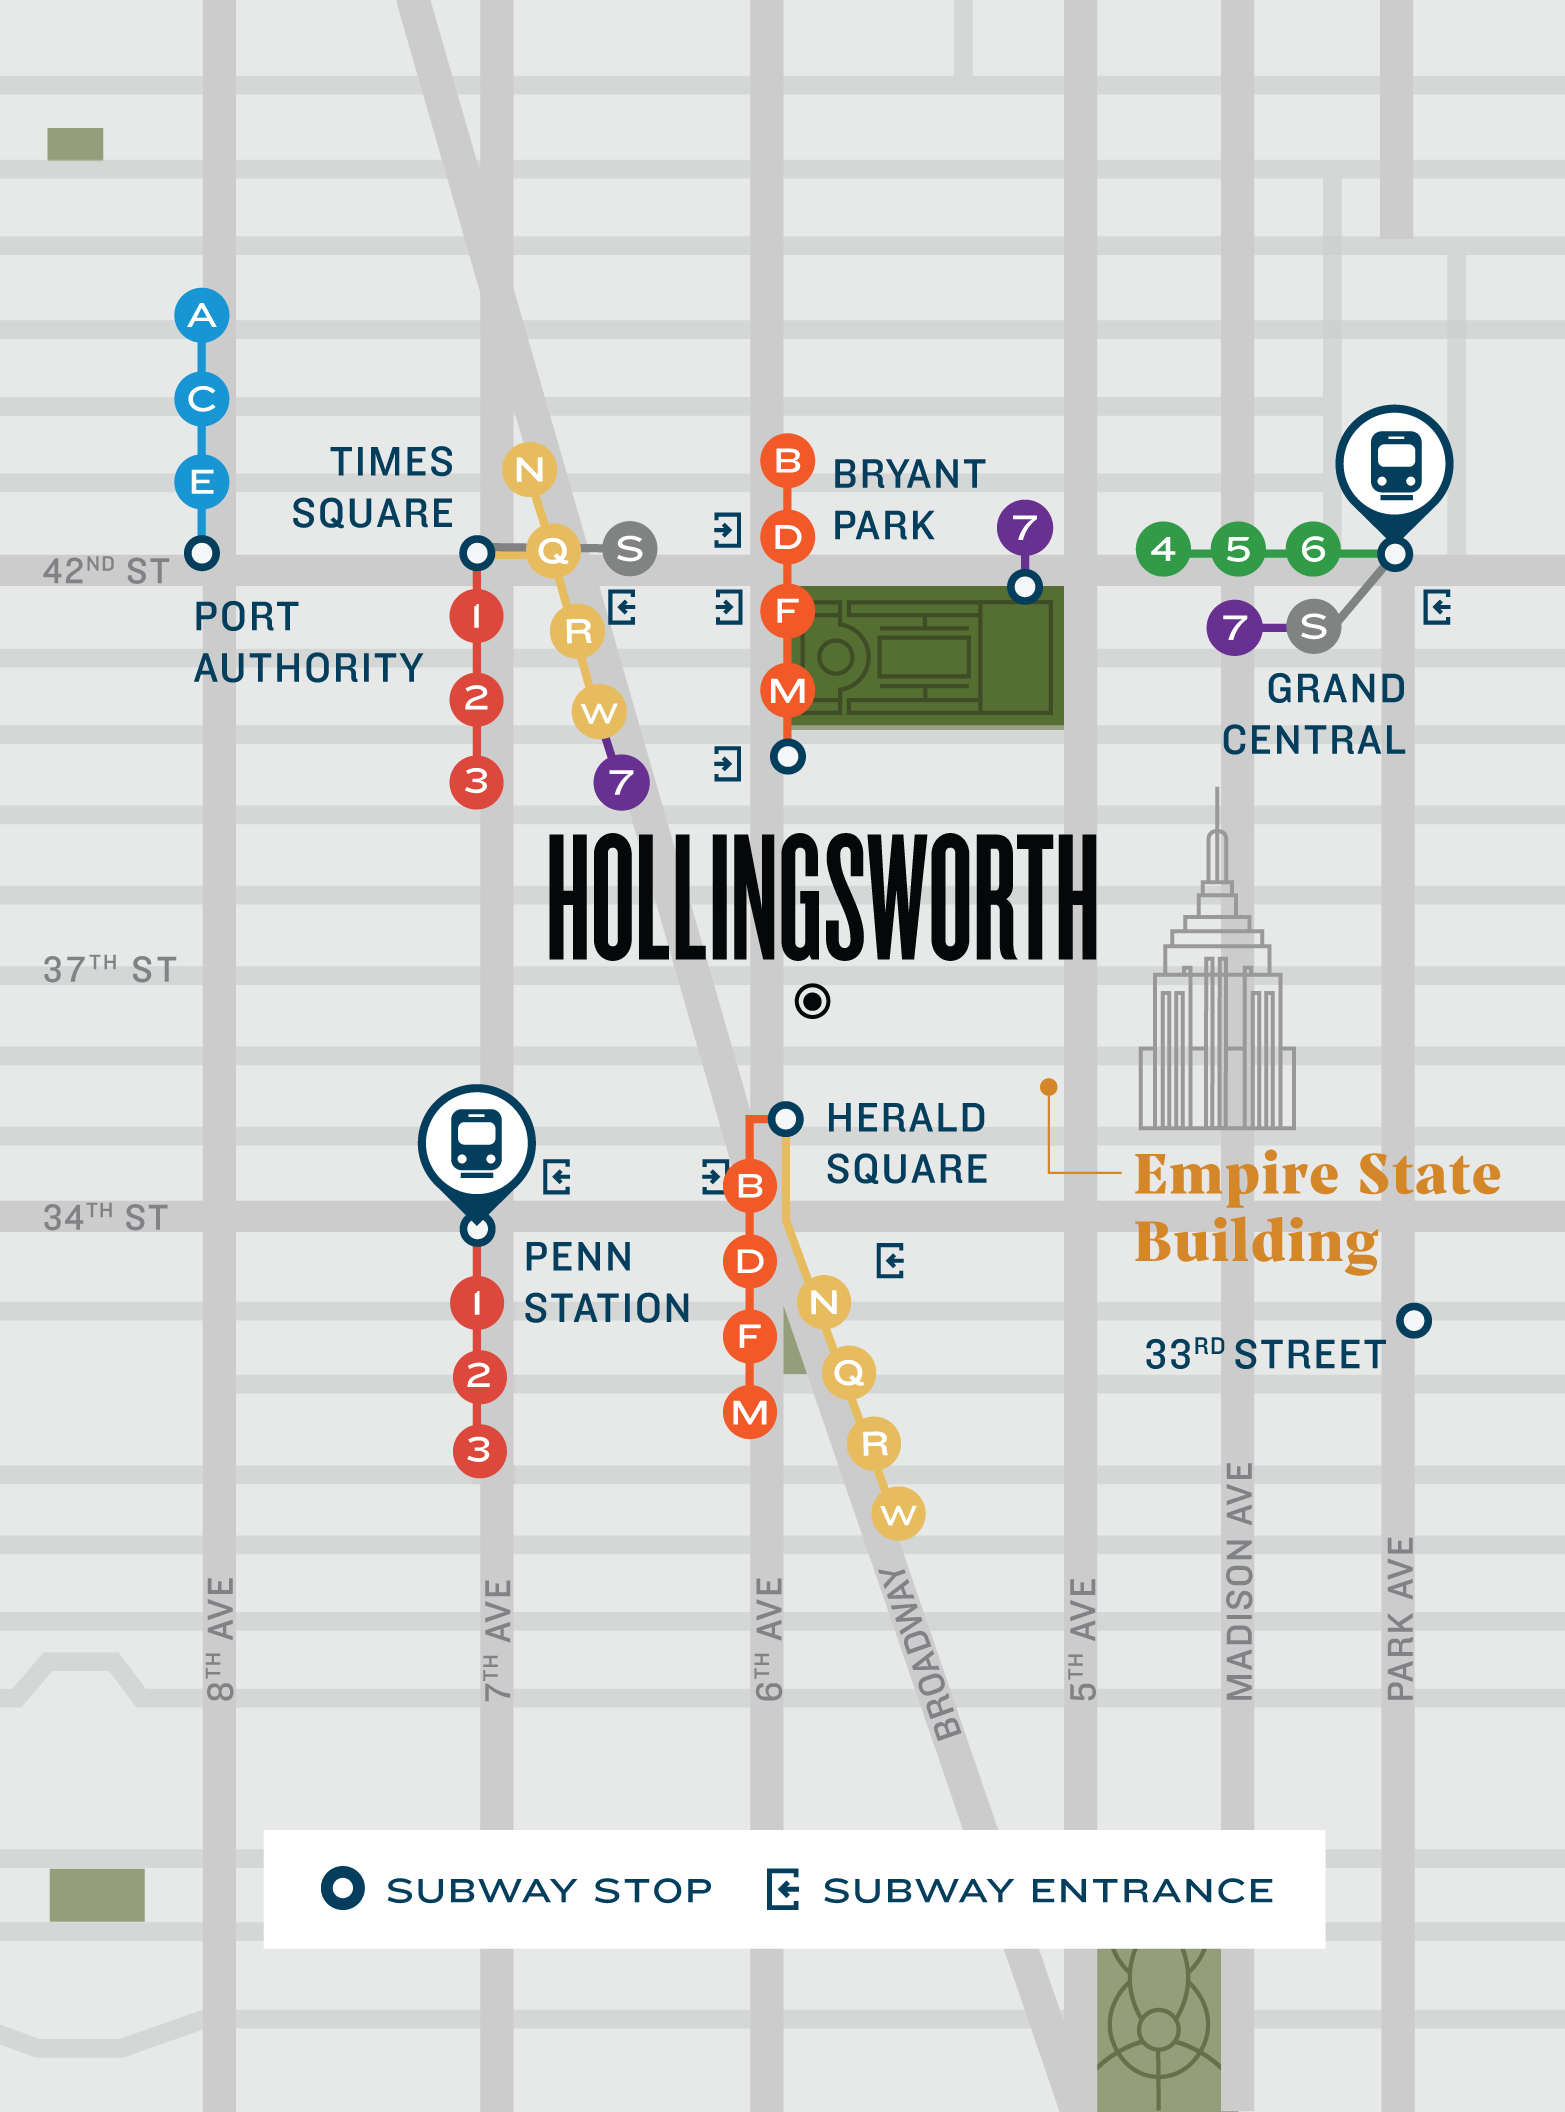 Mobile-Friendly Map Highlighting Where Hollingsworth Is in Relation to Iconic Location in NYC